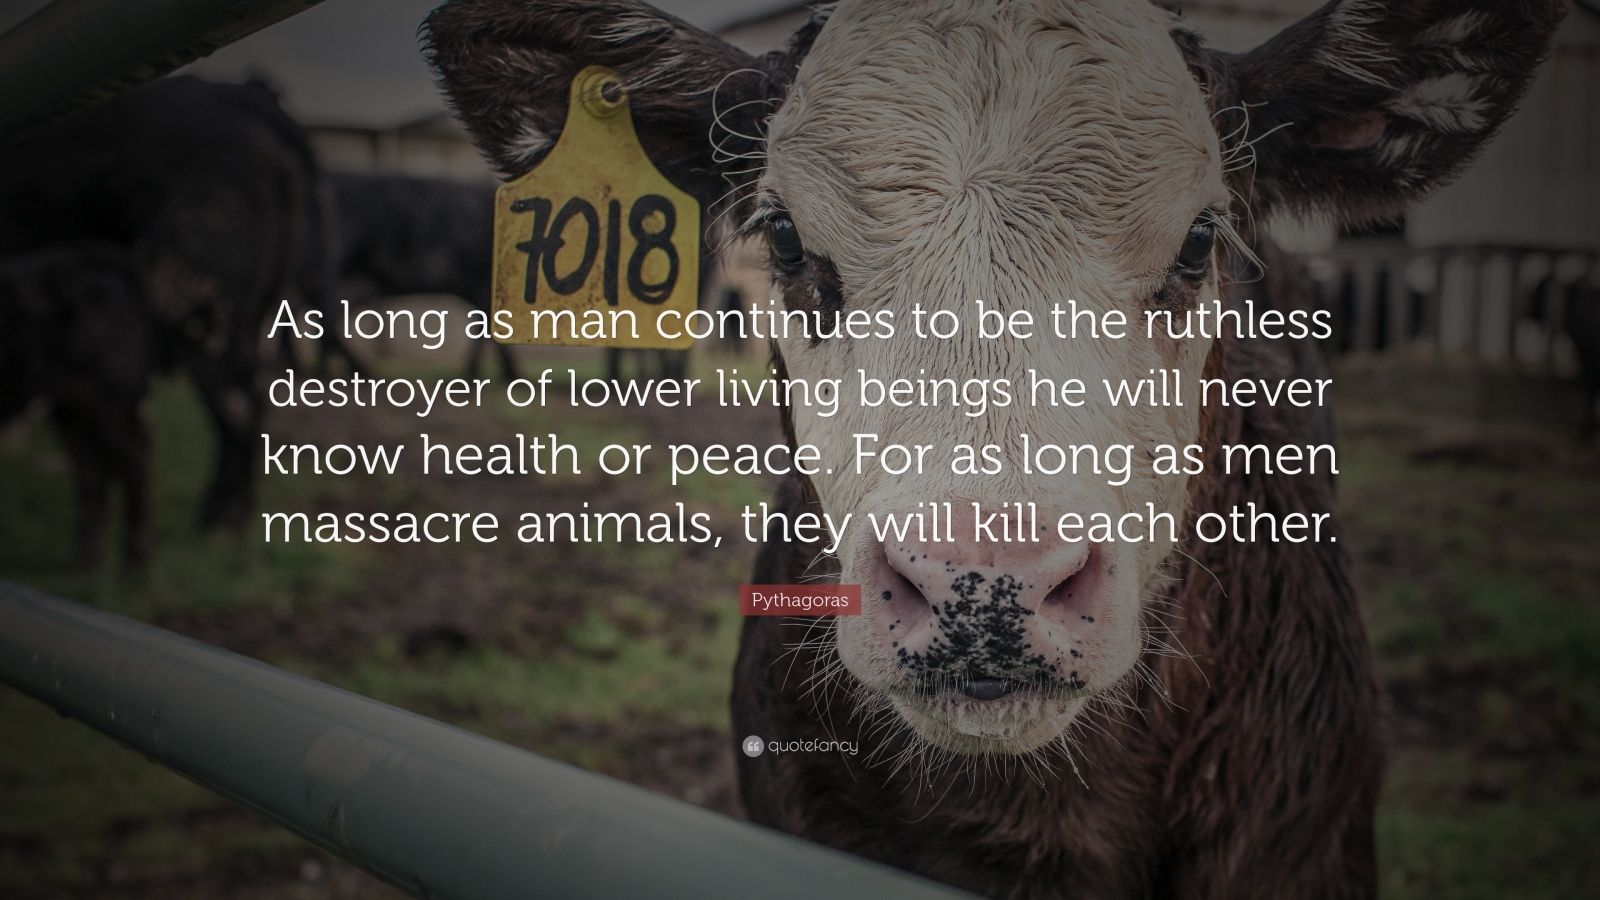 """Pythagoras Quote: """"As long as man continues to be the ruthless destroyer of lower living beings he will never know health or peace. For as long as men massacre animals, they will kill each other."""""""